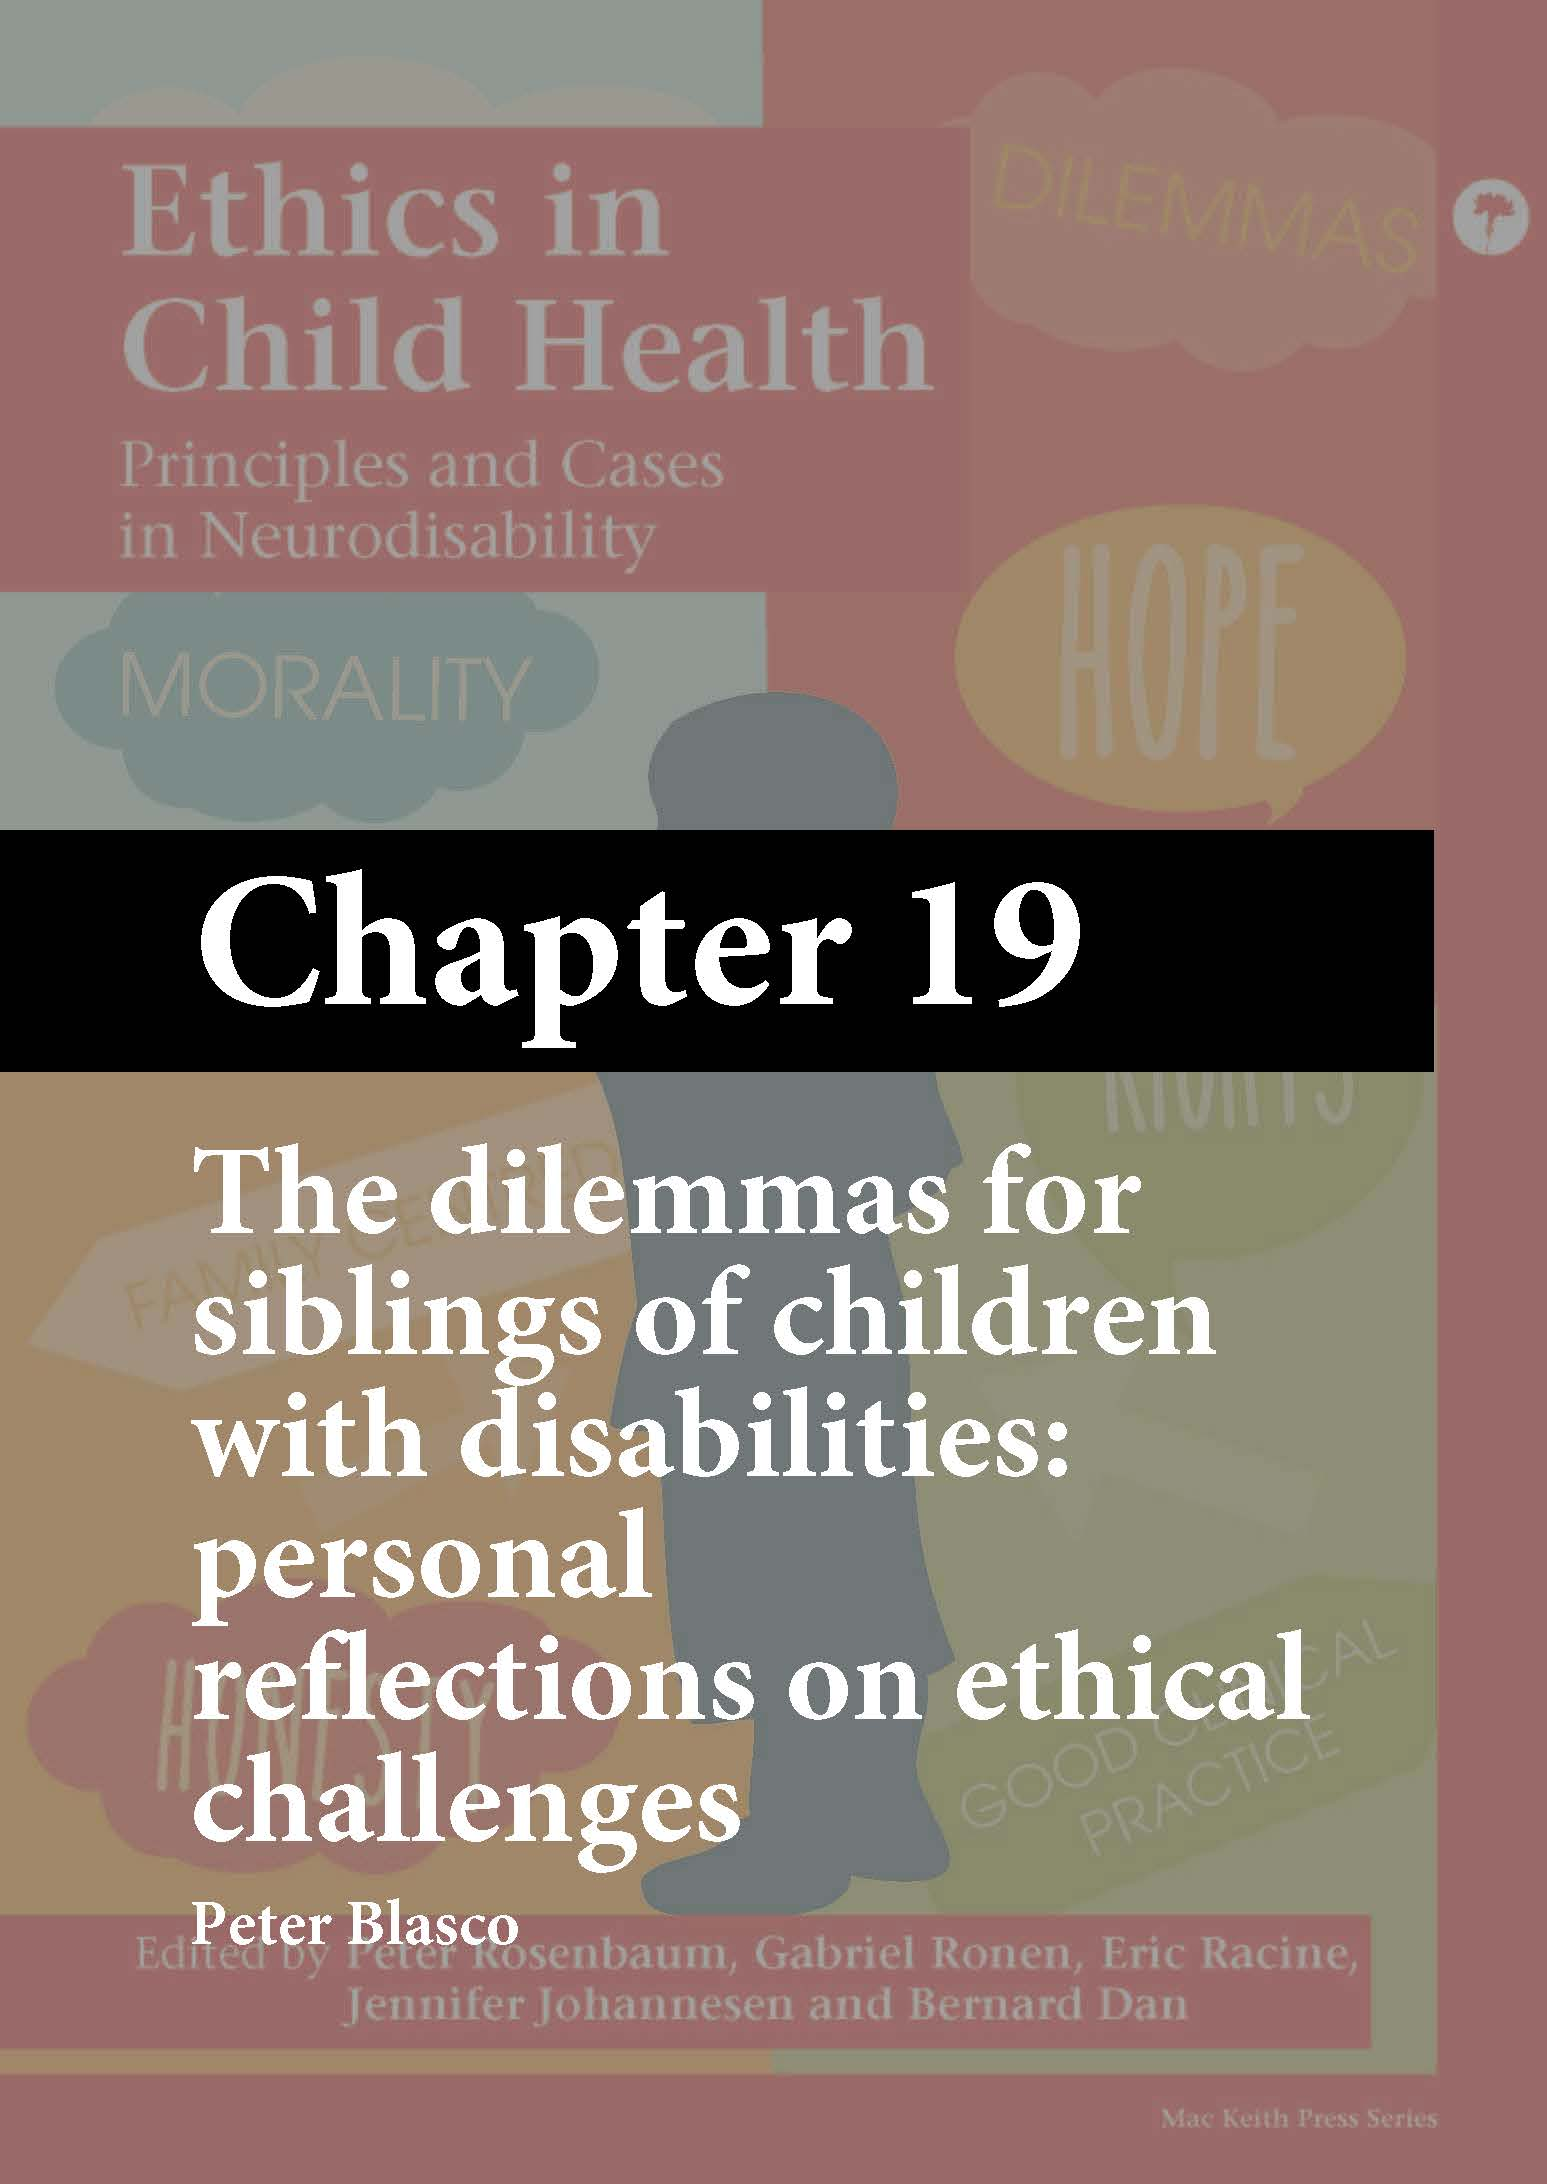 Ethics in Child Health, Rosenbaum, Chapter 19 cover